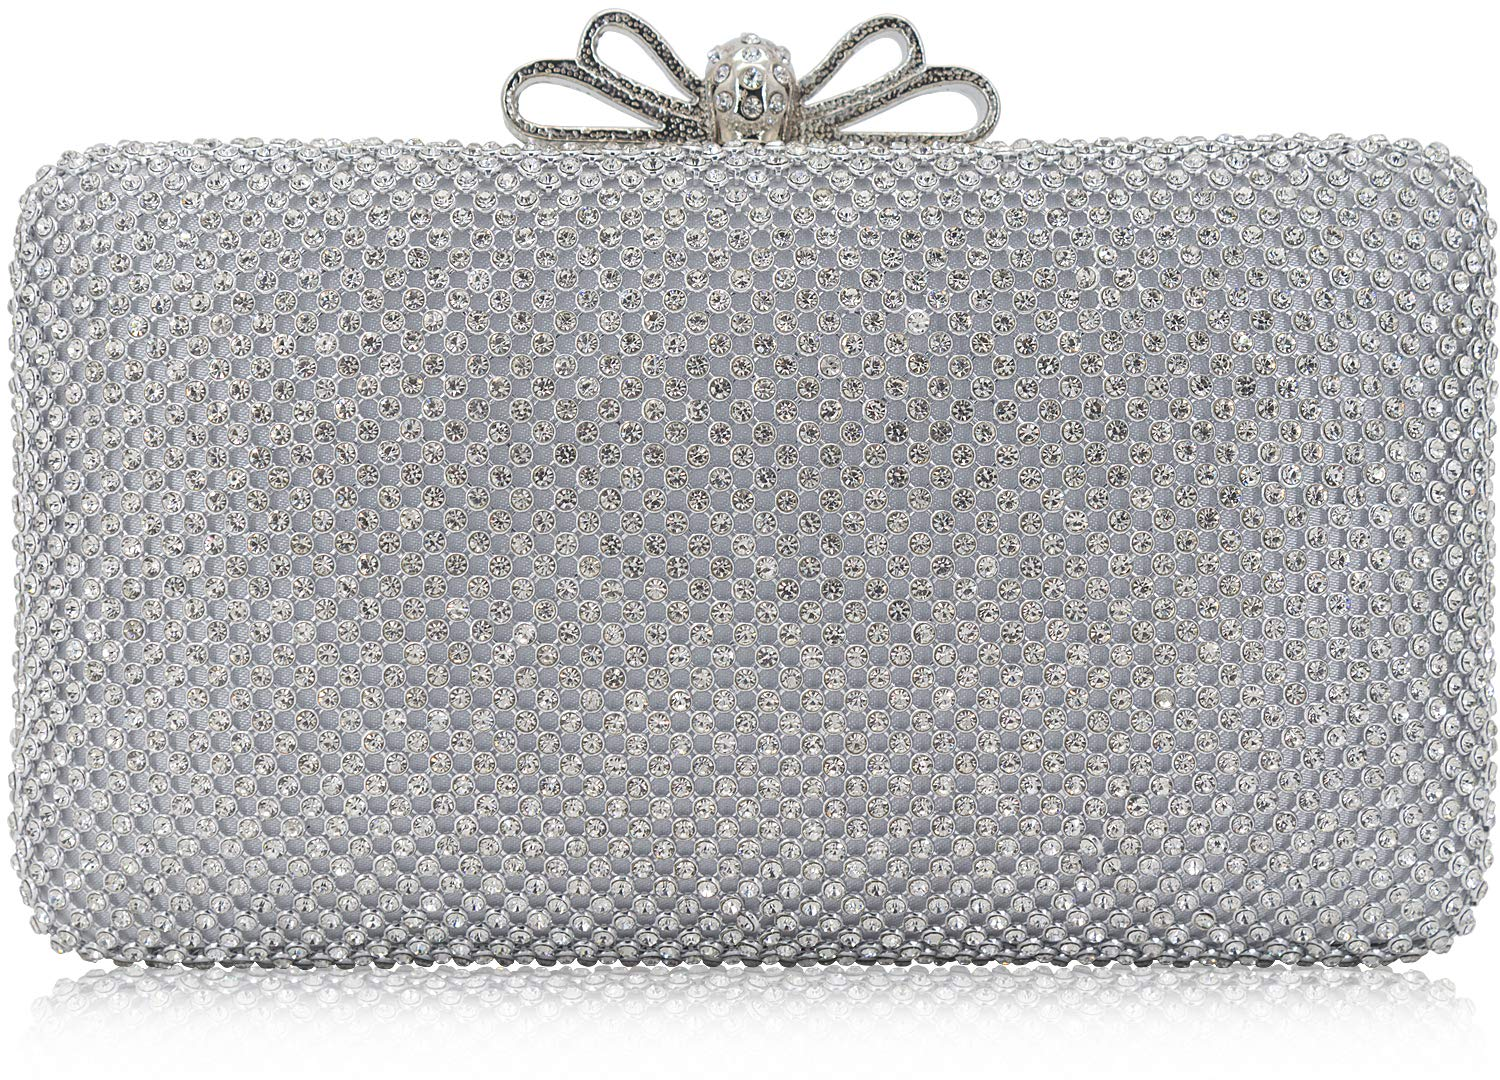 300ce097 Dexmay Bling Rhinestone Crystal Clutch Purse Bow Clasp Women Evening Bag  for Bridesmaid Wedding Party product